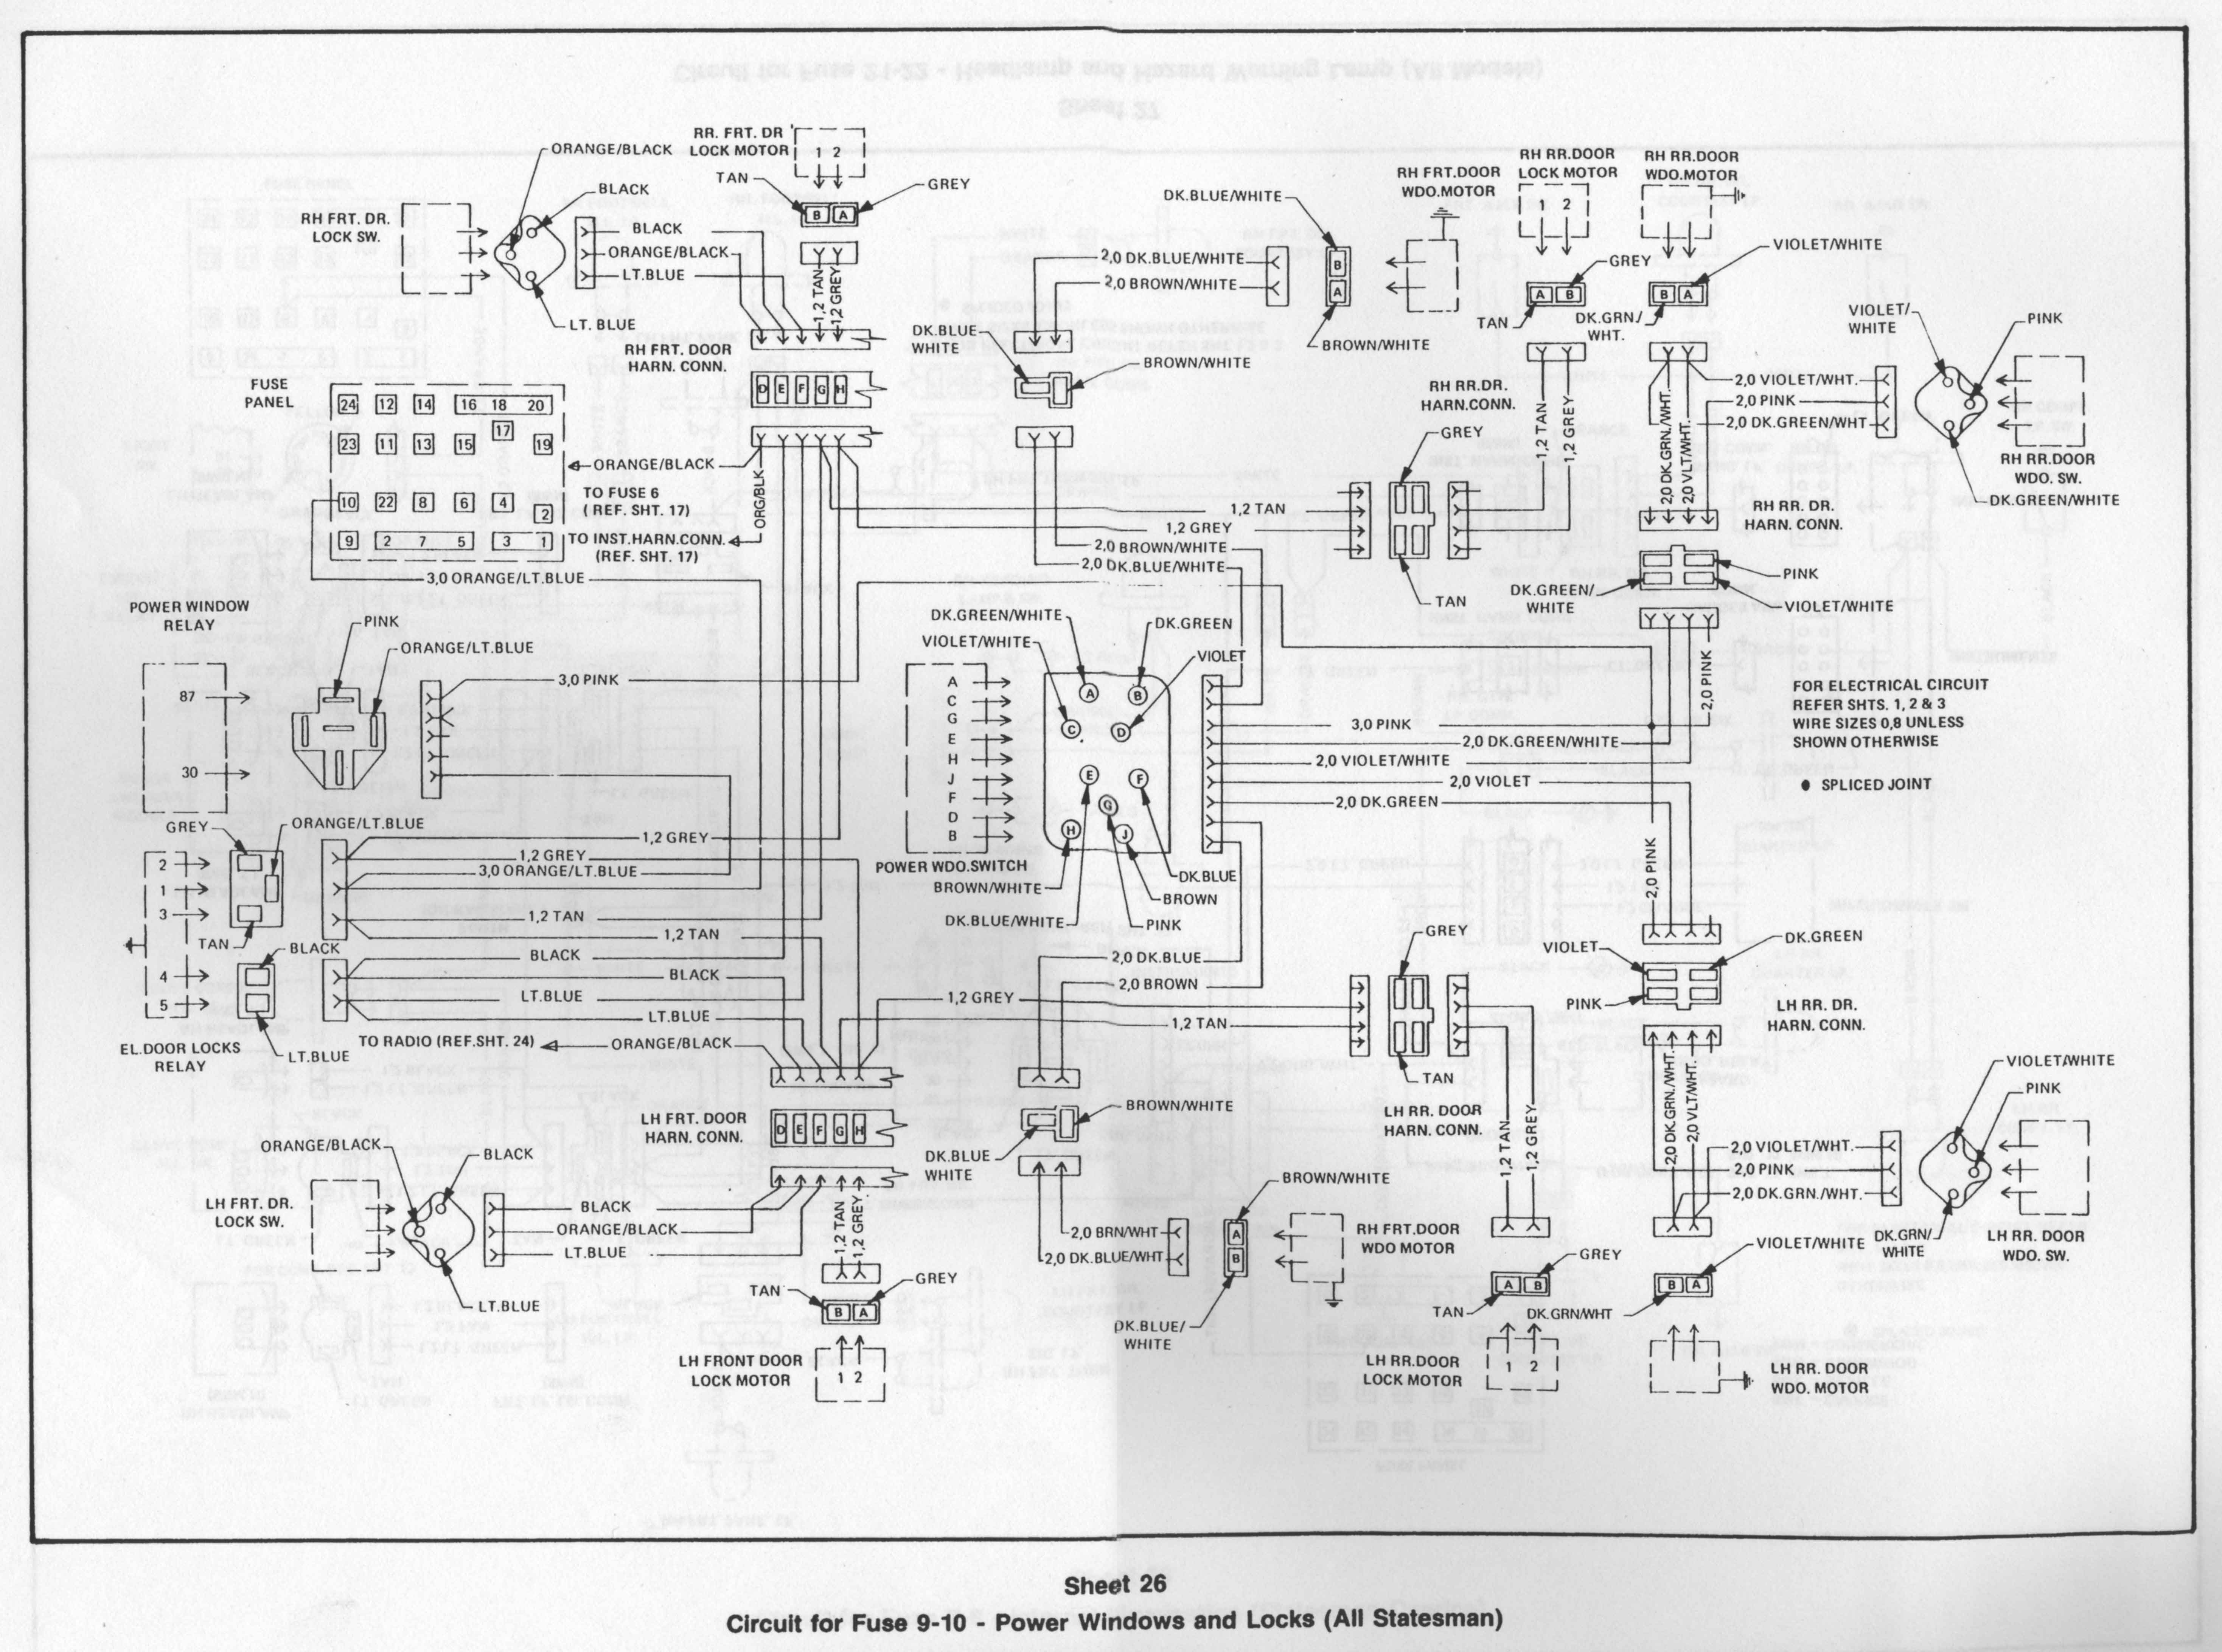 Gm Parts Book Diagrams Hq Holden Wiring Diagram